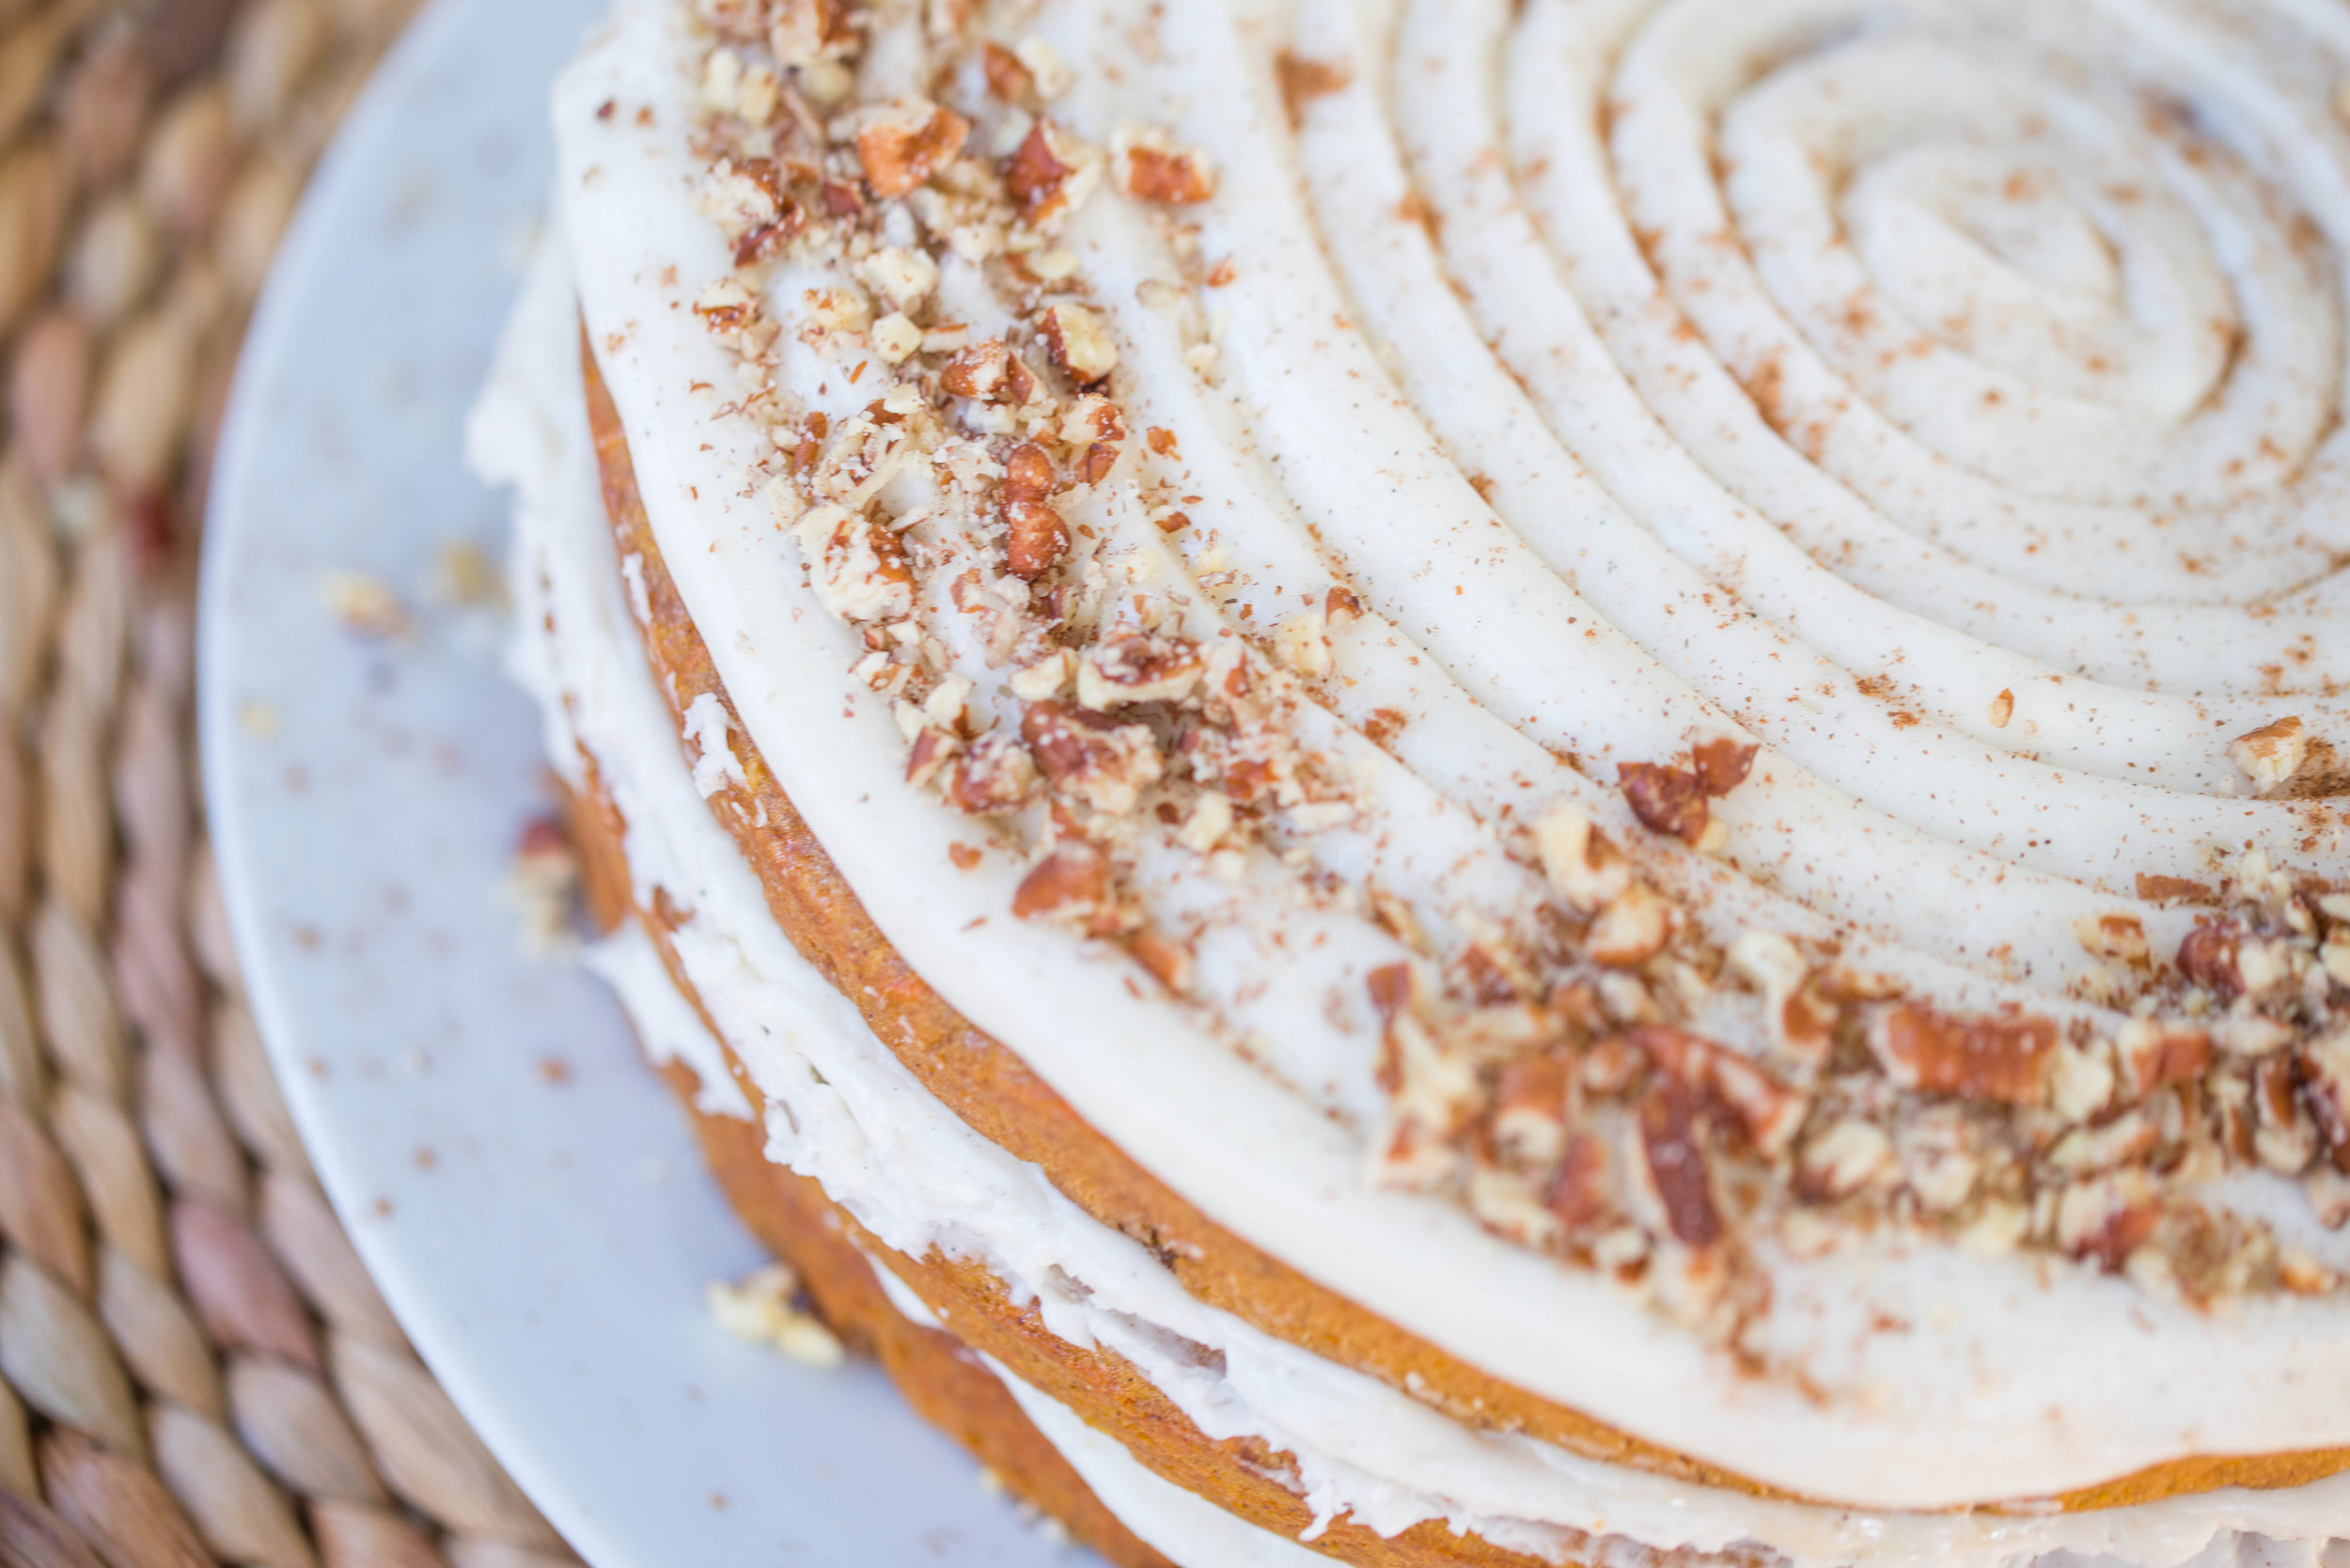 MIXED-AND-MEASURED-CARROT-CAKE_DSC_3222.jpg